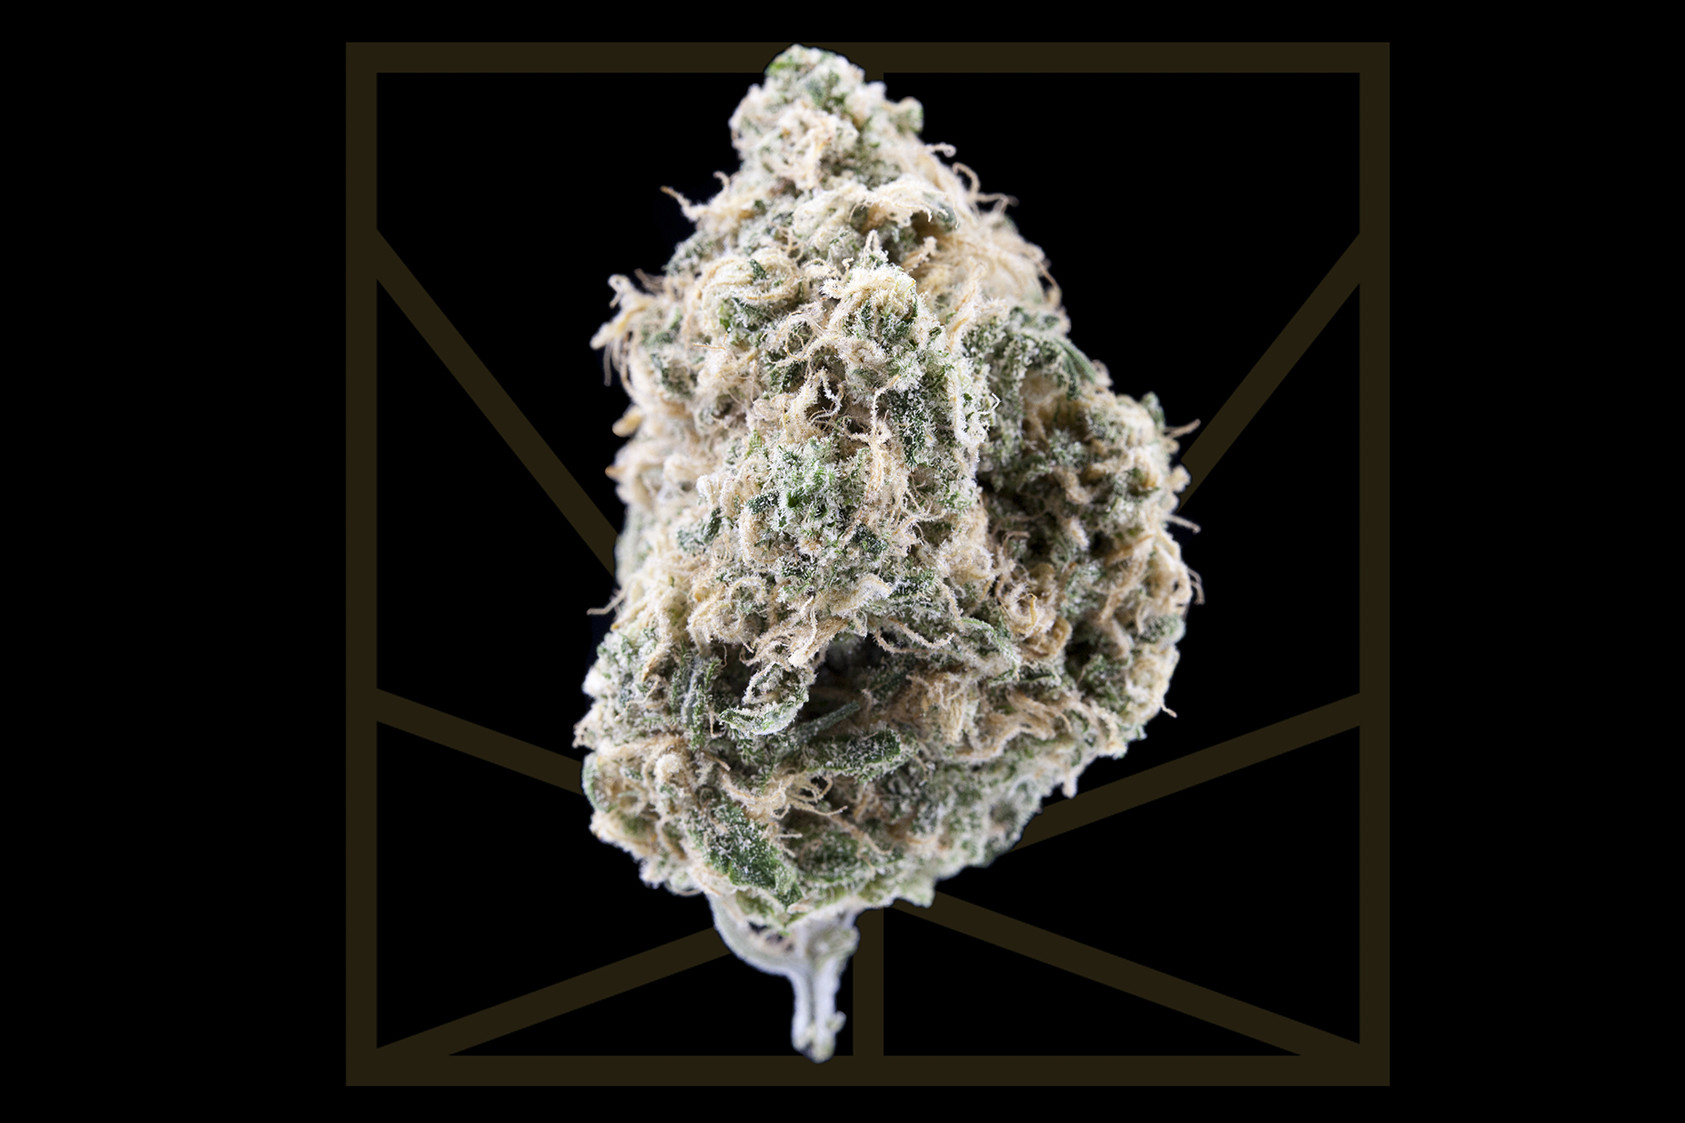 """<p><em>""""The remedy for everyhing, it seems that you are / The truth itself 'cause nothing else can take me so far.""""</em></p>  <p>For many cannabis connoisseurs, particularly on the West Coast, Blue Dream is a go-to strain. This sativa-dominant hybrid is a cross between indica Blueberry and sativa Haze. Blue Dream is a versatile strain that has become a dispensary staple. The heavy tranquilizing effects and body high of Blueberry are balanced with a cerebral energy boost from Haze, making this THC-rich strain perfect for daytime pain relief without couch lock. This flower's euphoric effects and candy-like sweet blueberry aroma, can make you feel like you're living in a """"Blue Dream"""" walking on cloud 9 while your pain and stress float away.</p>"""